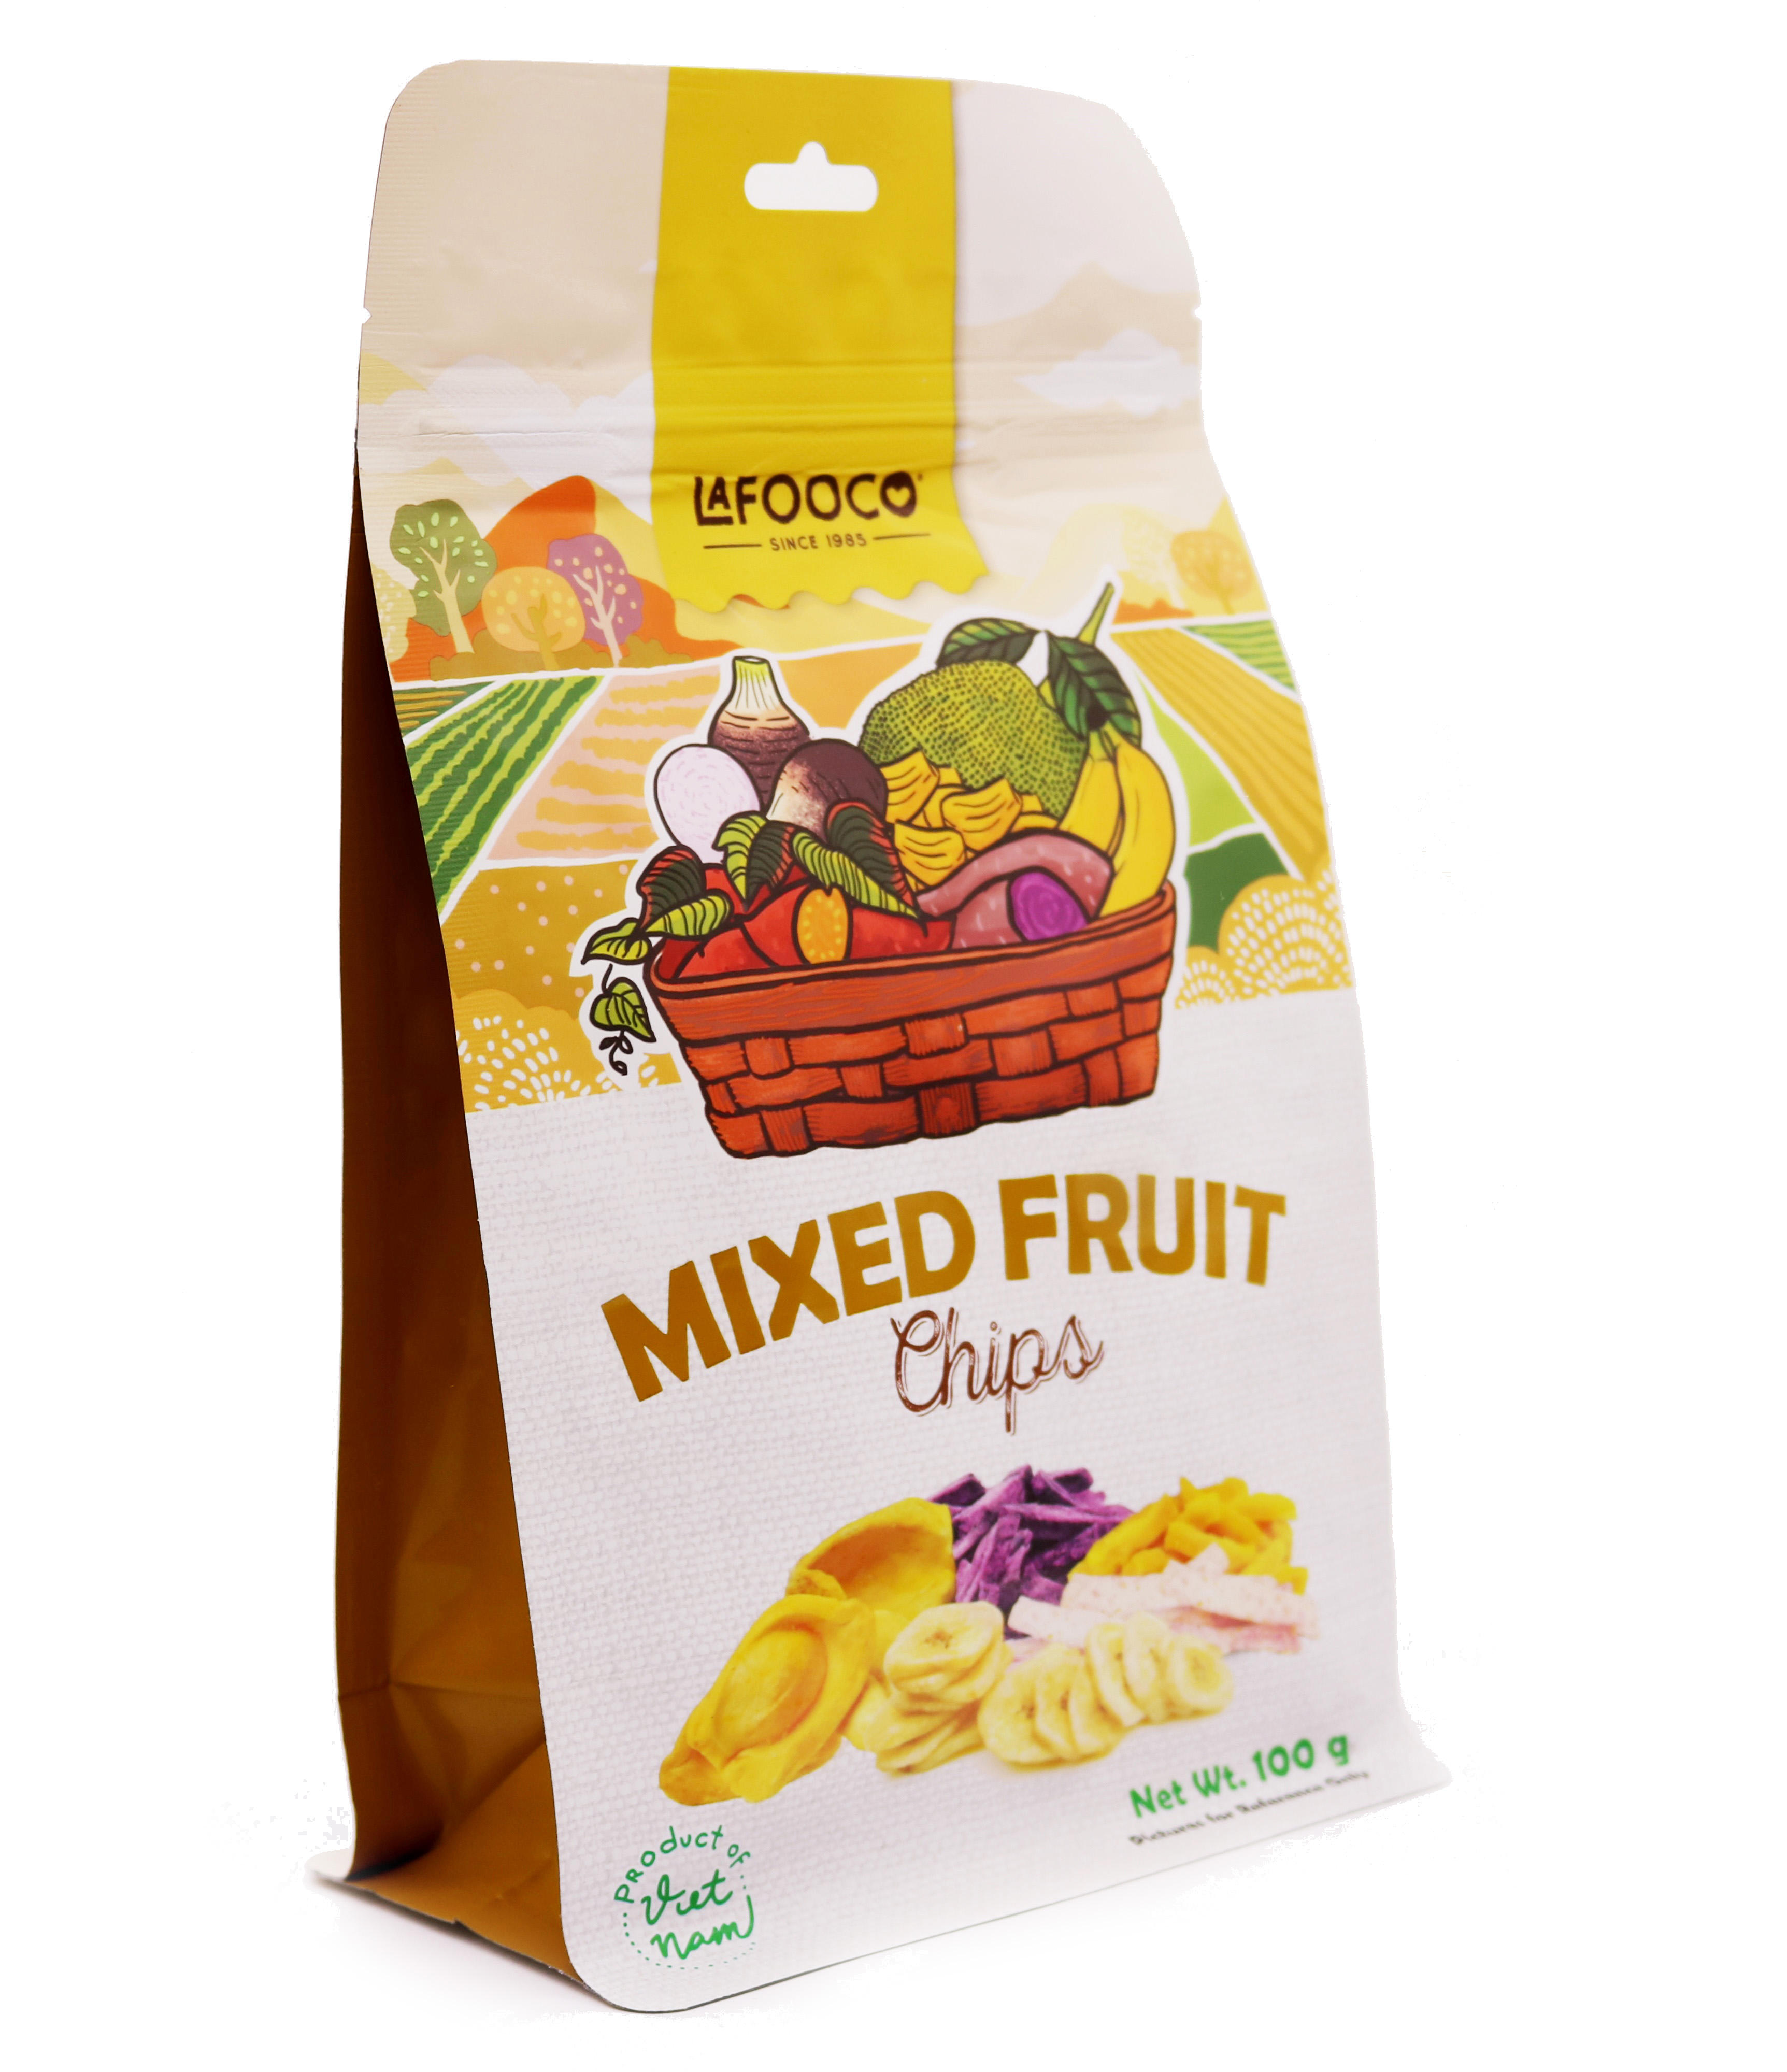 Mix Fruits Chips 100gr Origin Vietnam Standing pouch Natural Flavour Delicious Snack